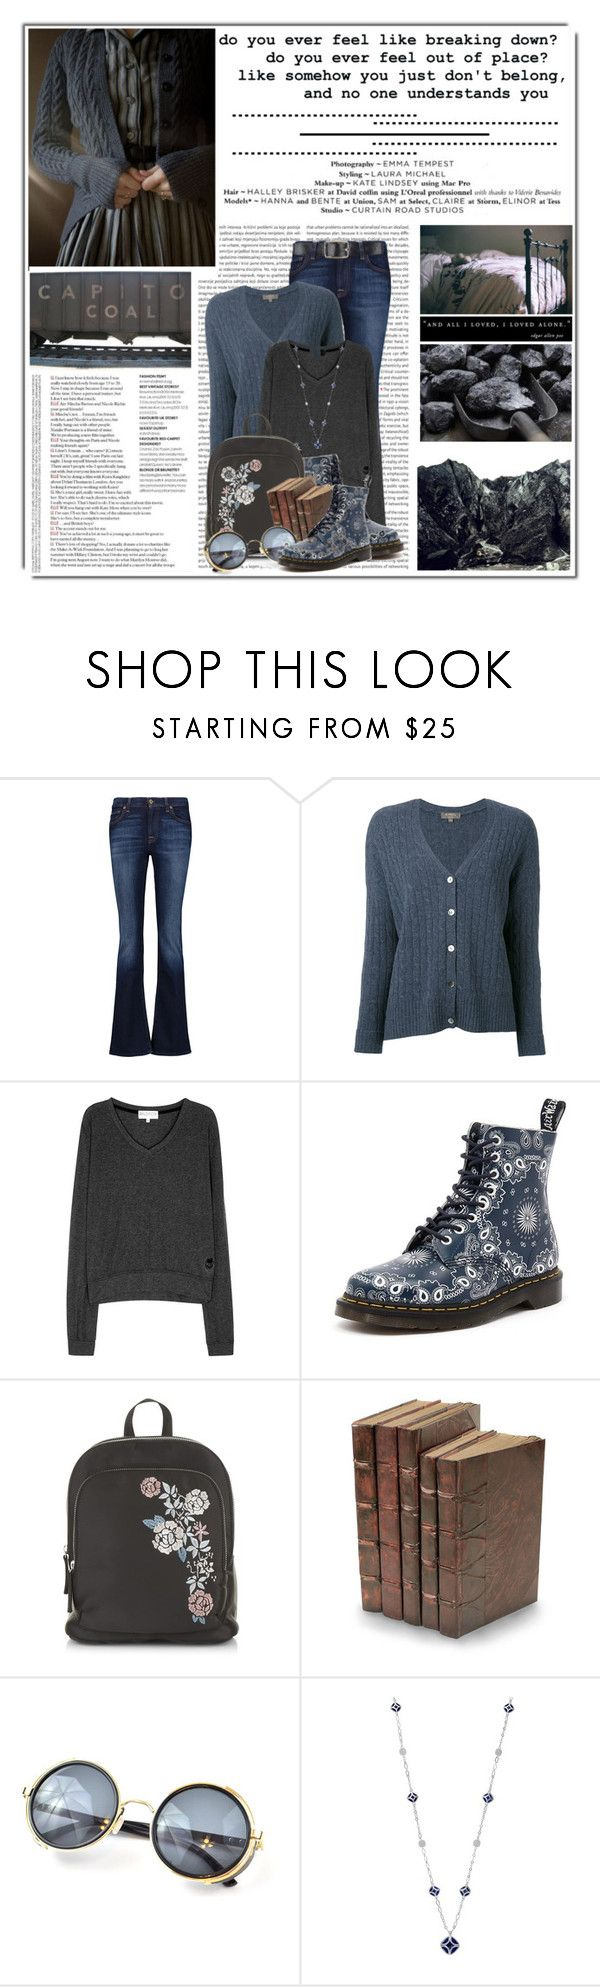 """""""Untitled #10923"""" by queenrachietemplateaddict ❤ liked on Polyvore featuring Oris, 7 For All Mankind, N.Peal, Wildfox, Dr. Martens, New Look, Decorative Leather Books, Chaps and Belstaff"""